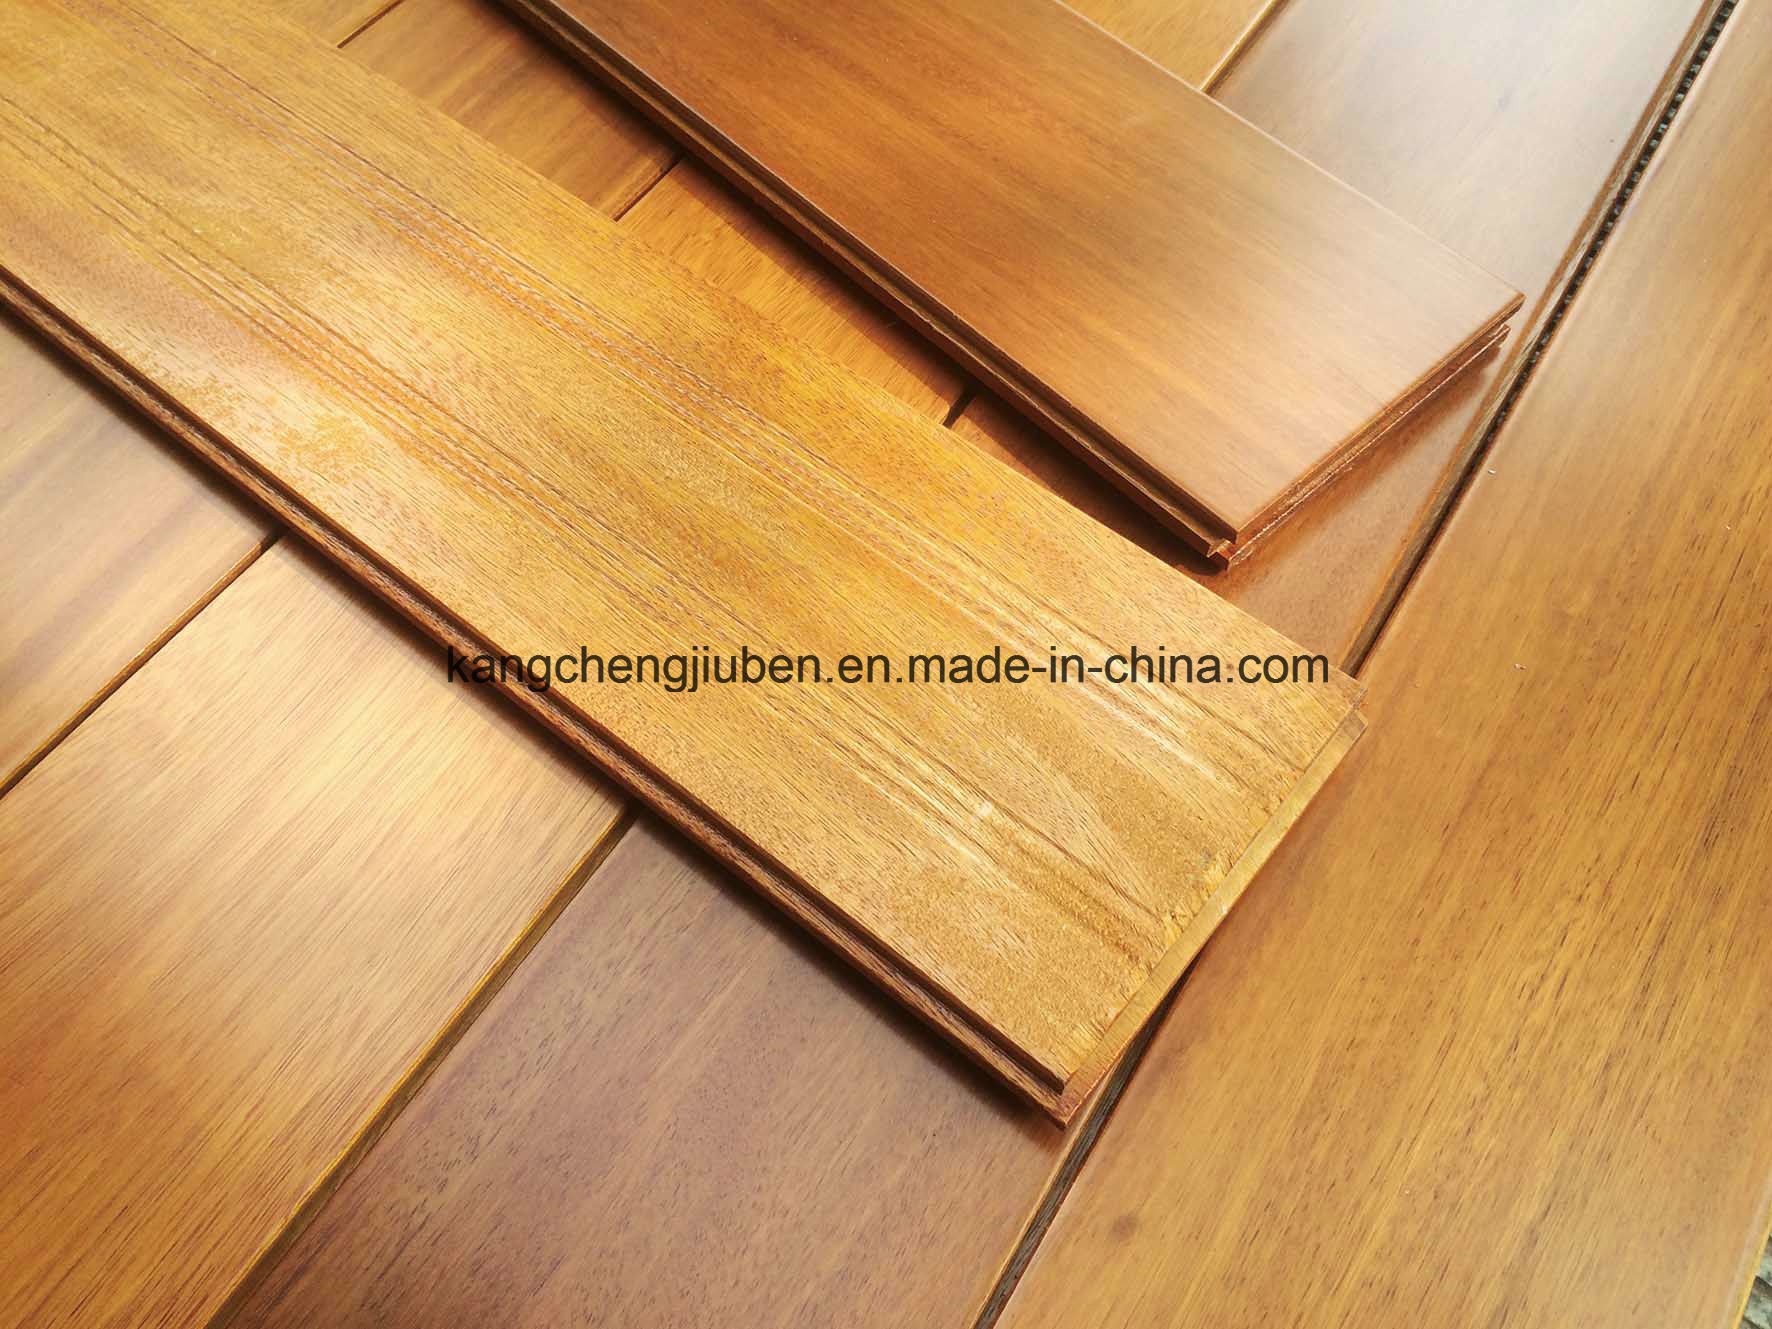 A Grade Wood Parquet/Hardwood Flooring (MD-01)